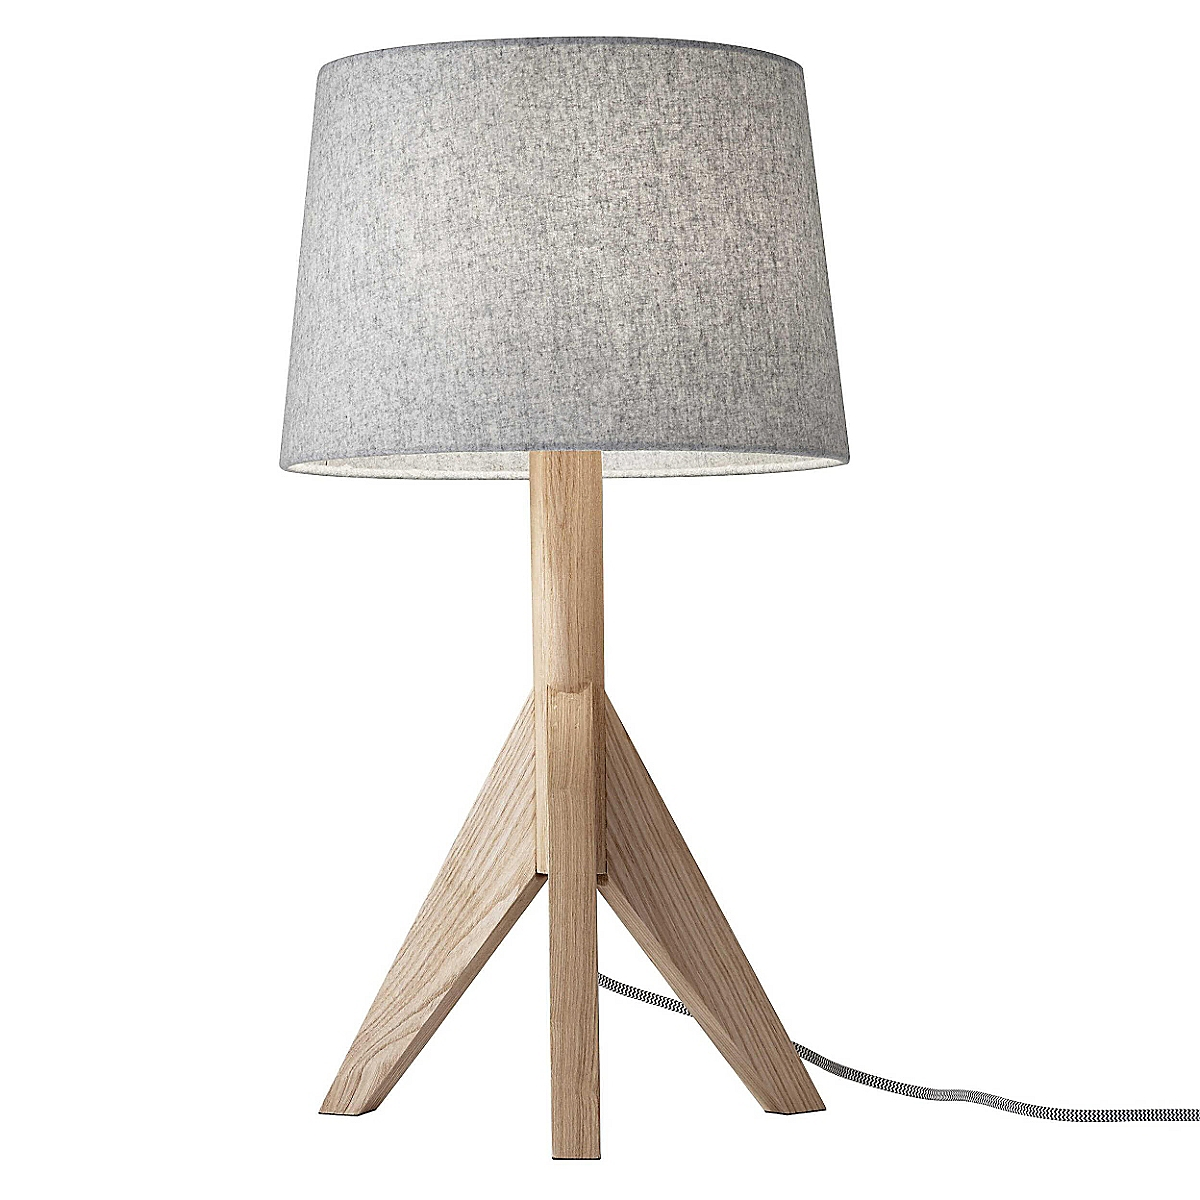 Modish Table Lamp